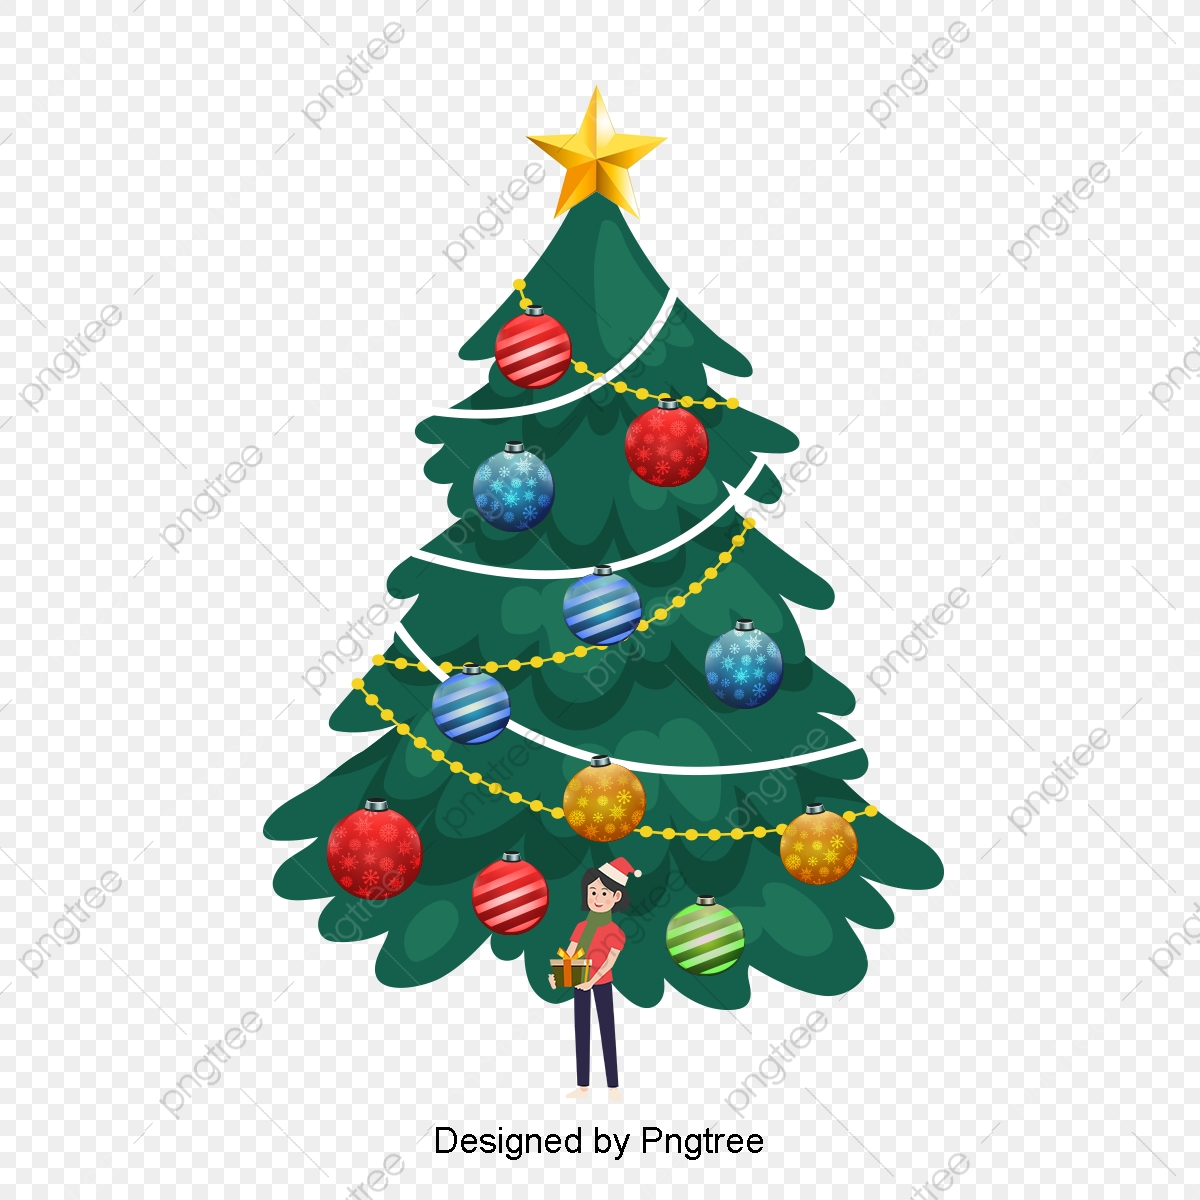 Lovely Cartoon Christmas Tree Decoration Decor Simplicity Handpaint Png Transparent Clipart Image And Psd File For Free Download